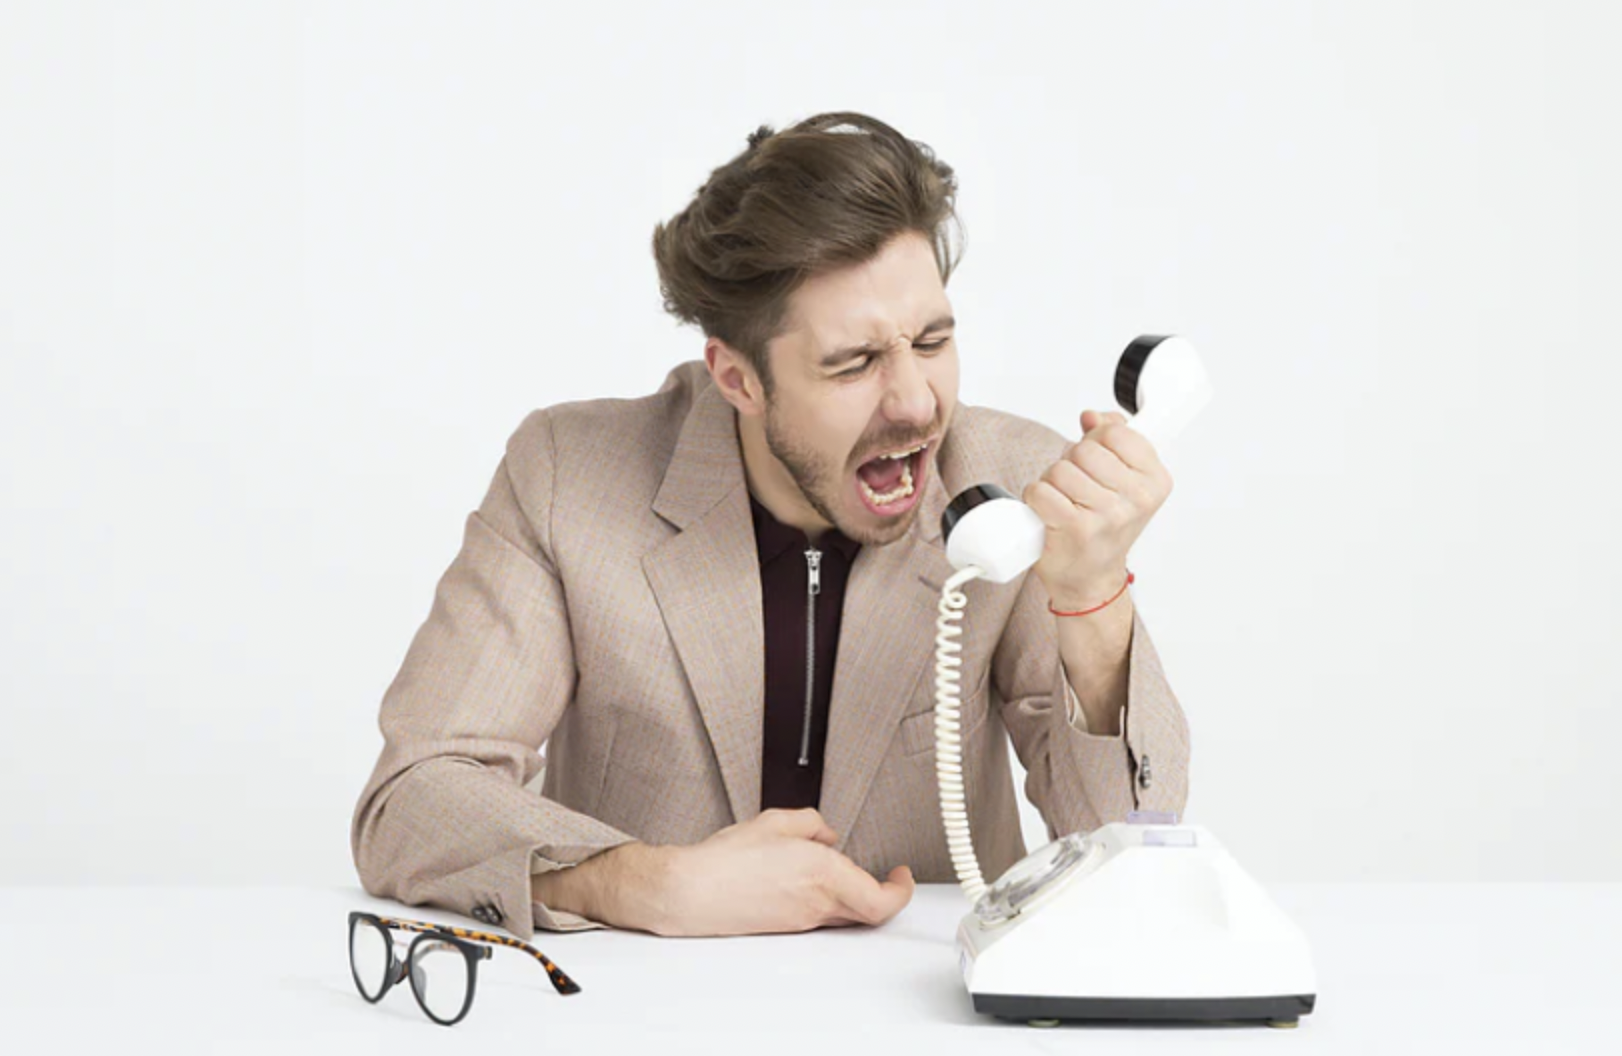 Frustrated customer service call transfer mistakes